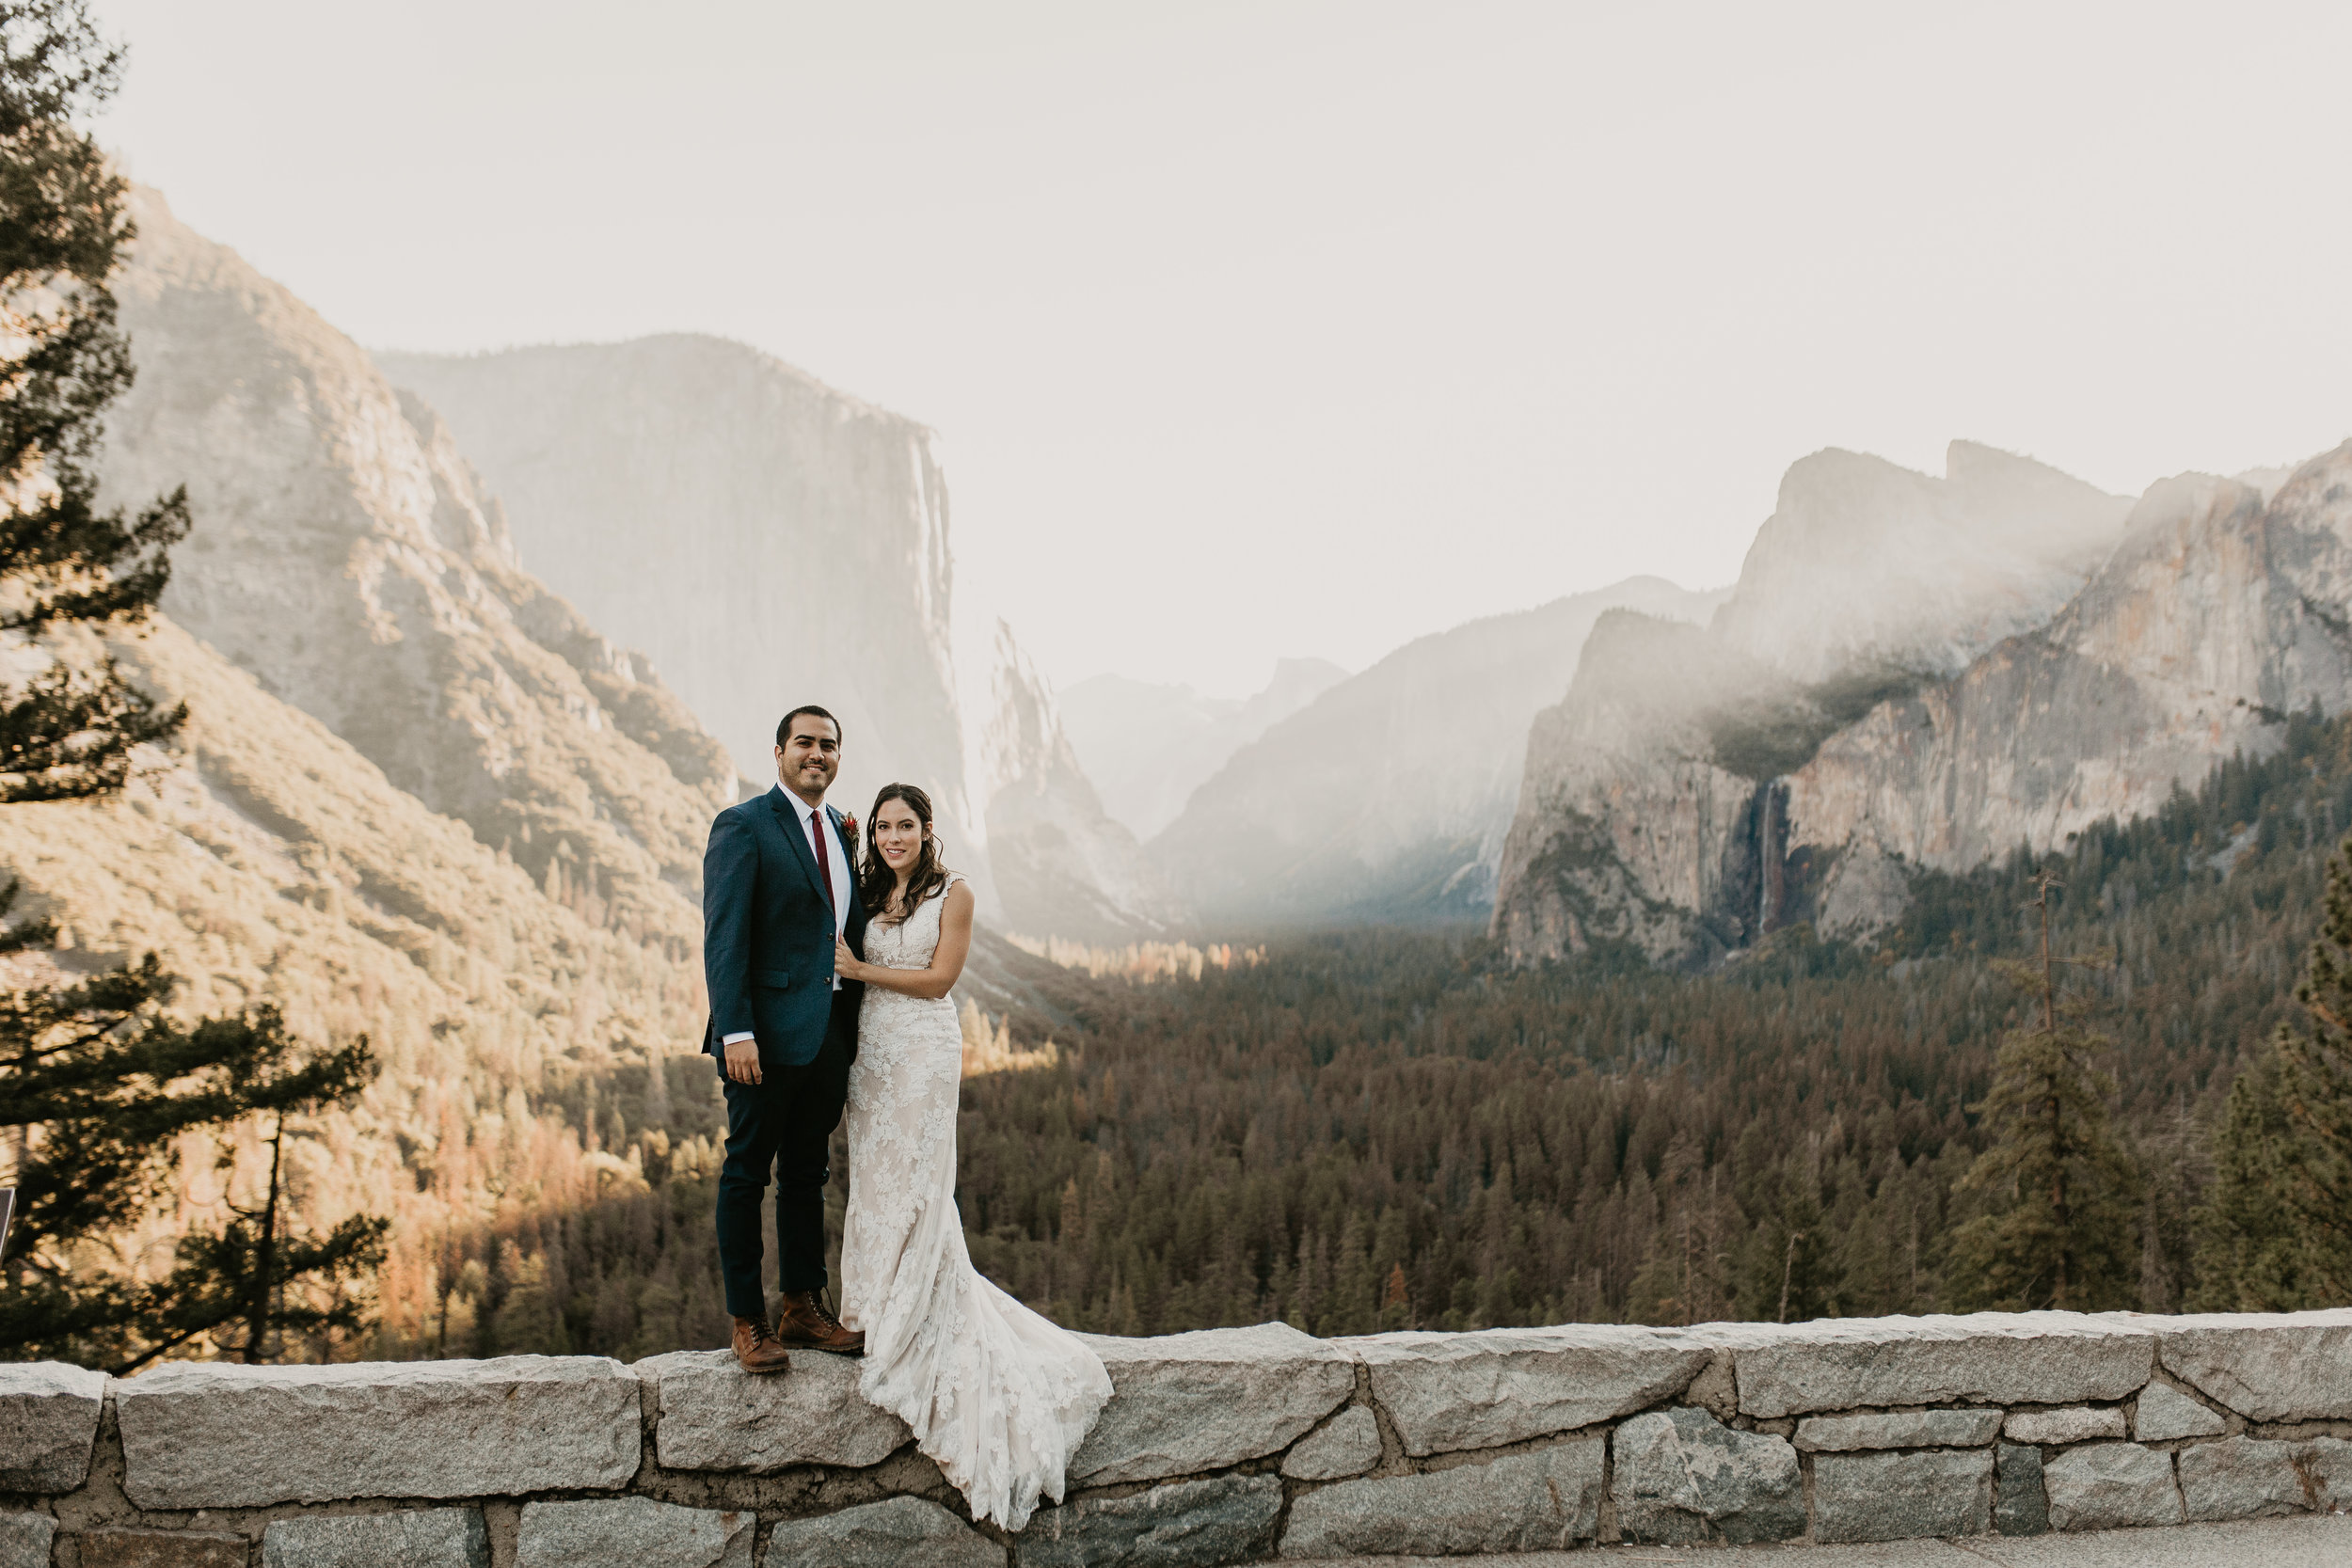 nicole-daacke-photography-intimate-elopement-wedding-yosemite-national-park-california-taft-point-sunset-photos-yosemite-valley-tunnel-view-first-look-sunrise-golden-granite-hiking-adventure-wedding-adventurous-elopement-photographer-5.jpg